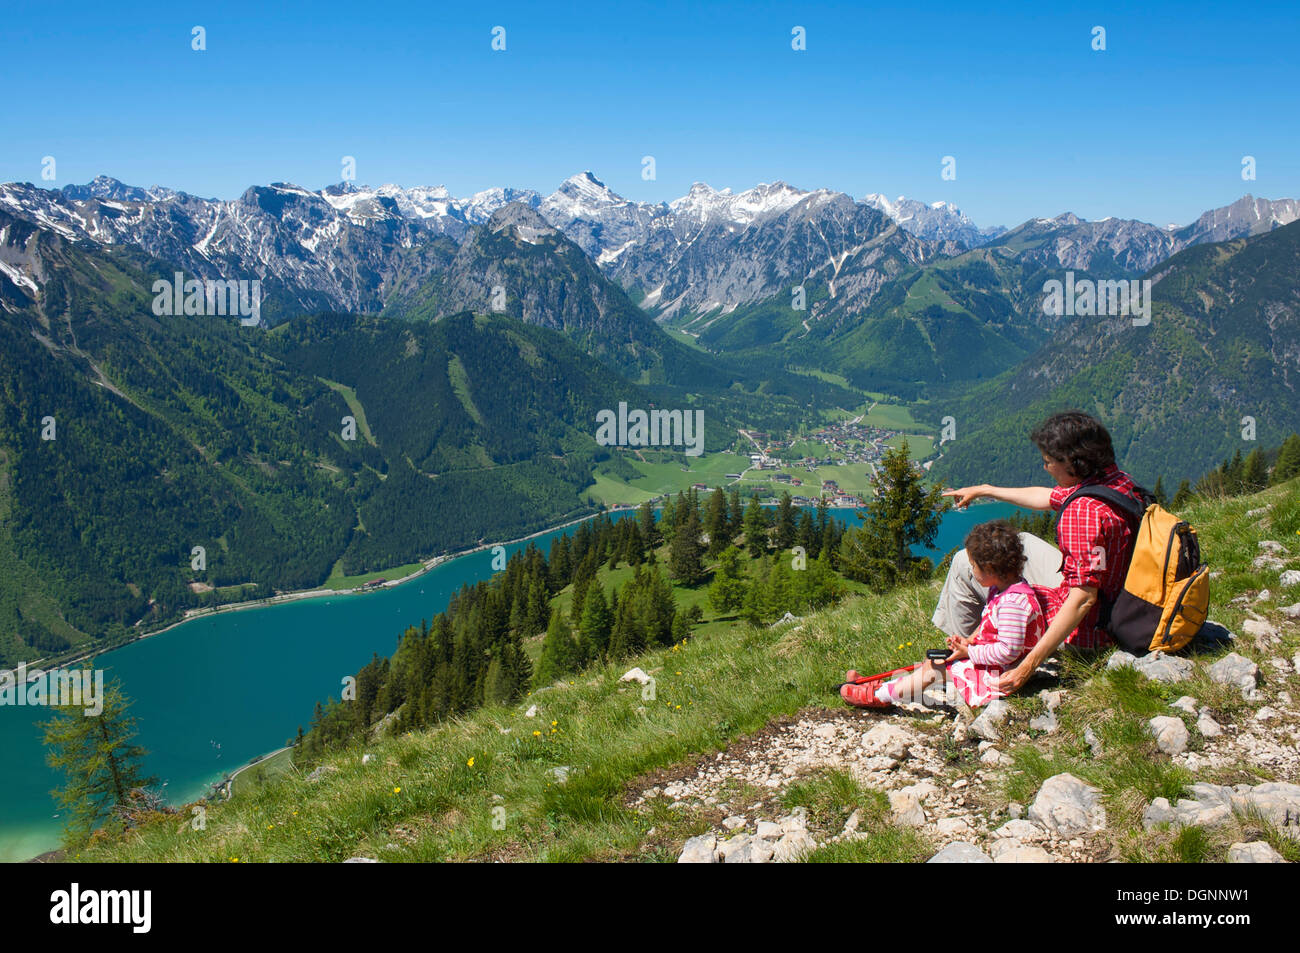 Hikers and Lake Achensee as seen from Durrakreuz viewpoint, Tyrol, Austria, Europe - Stock Image